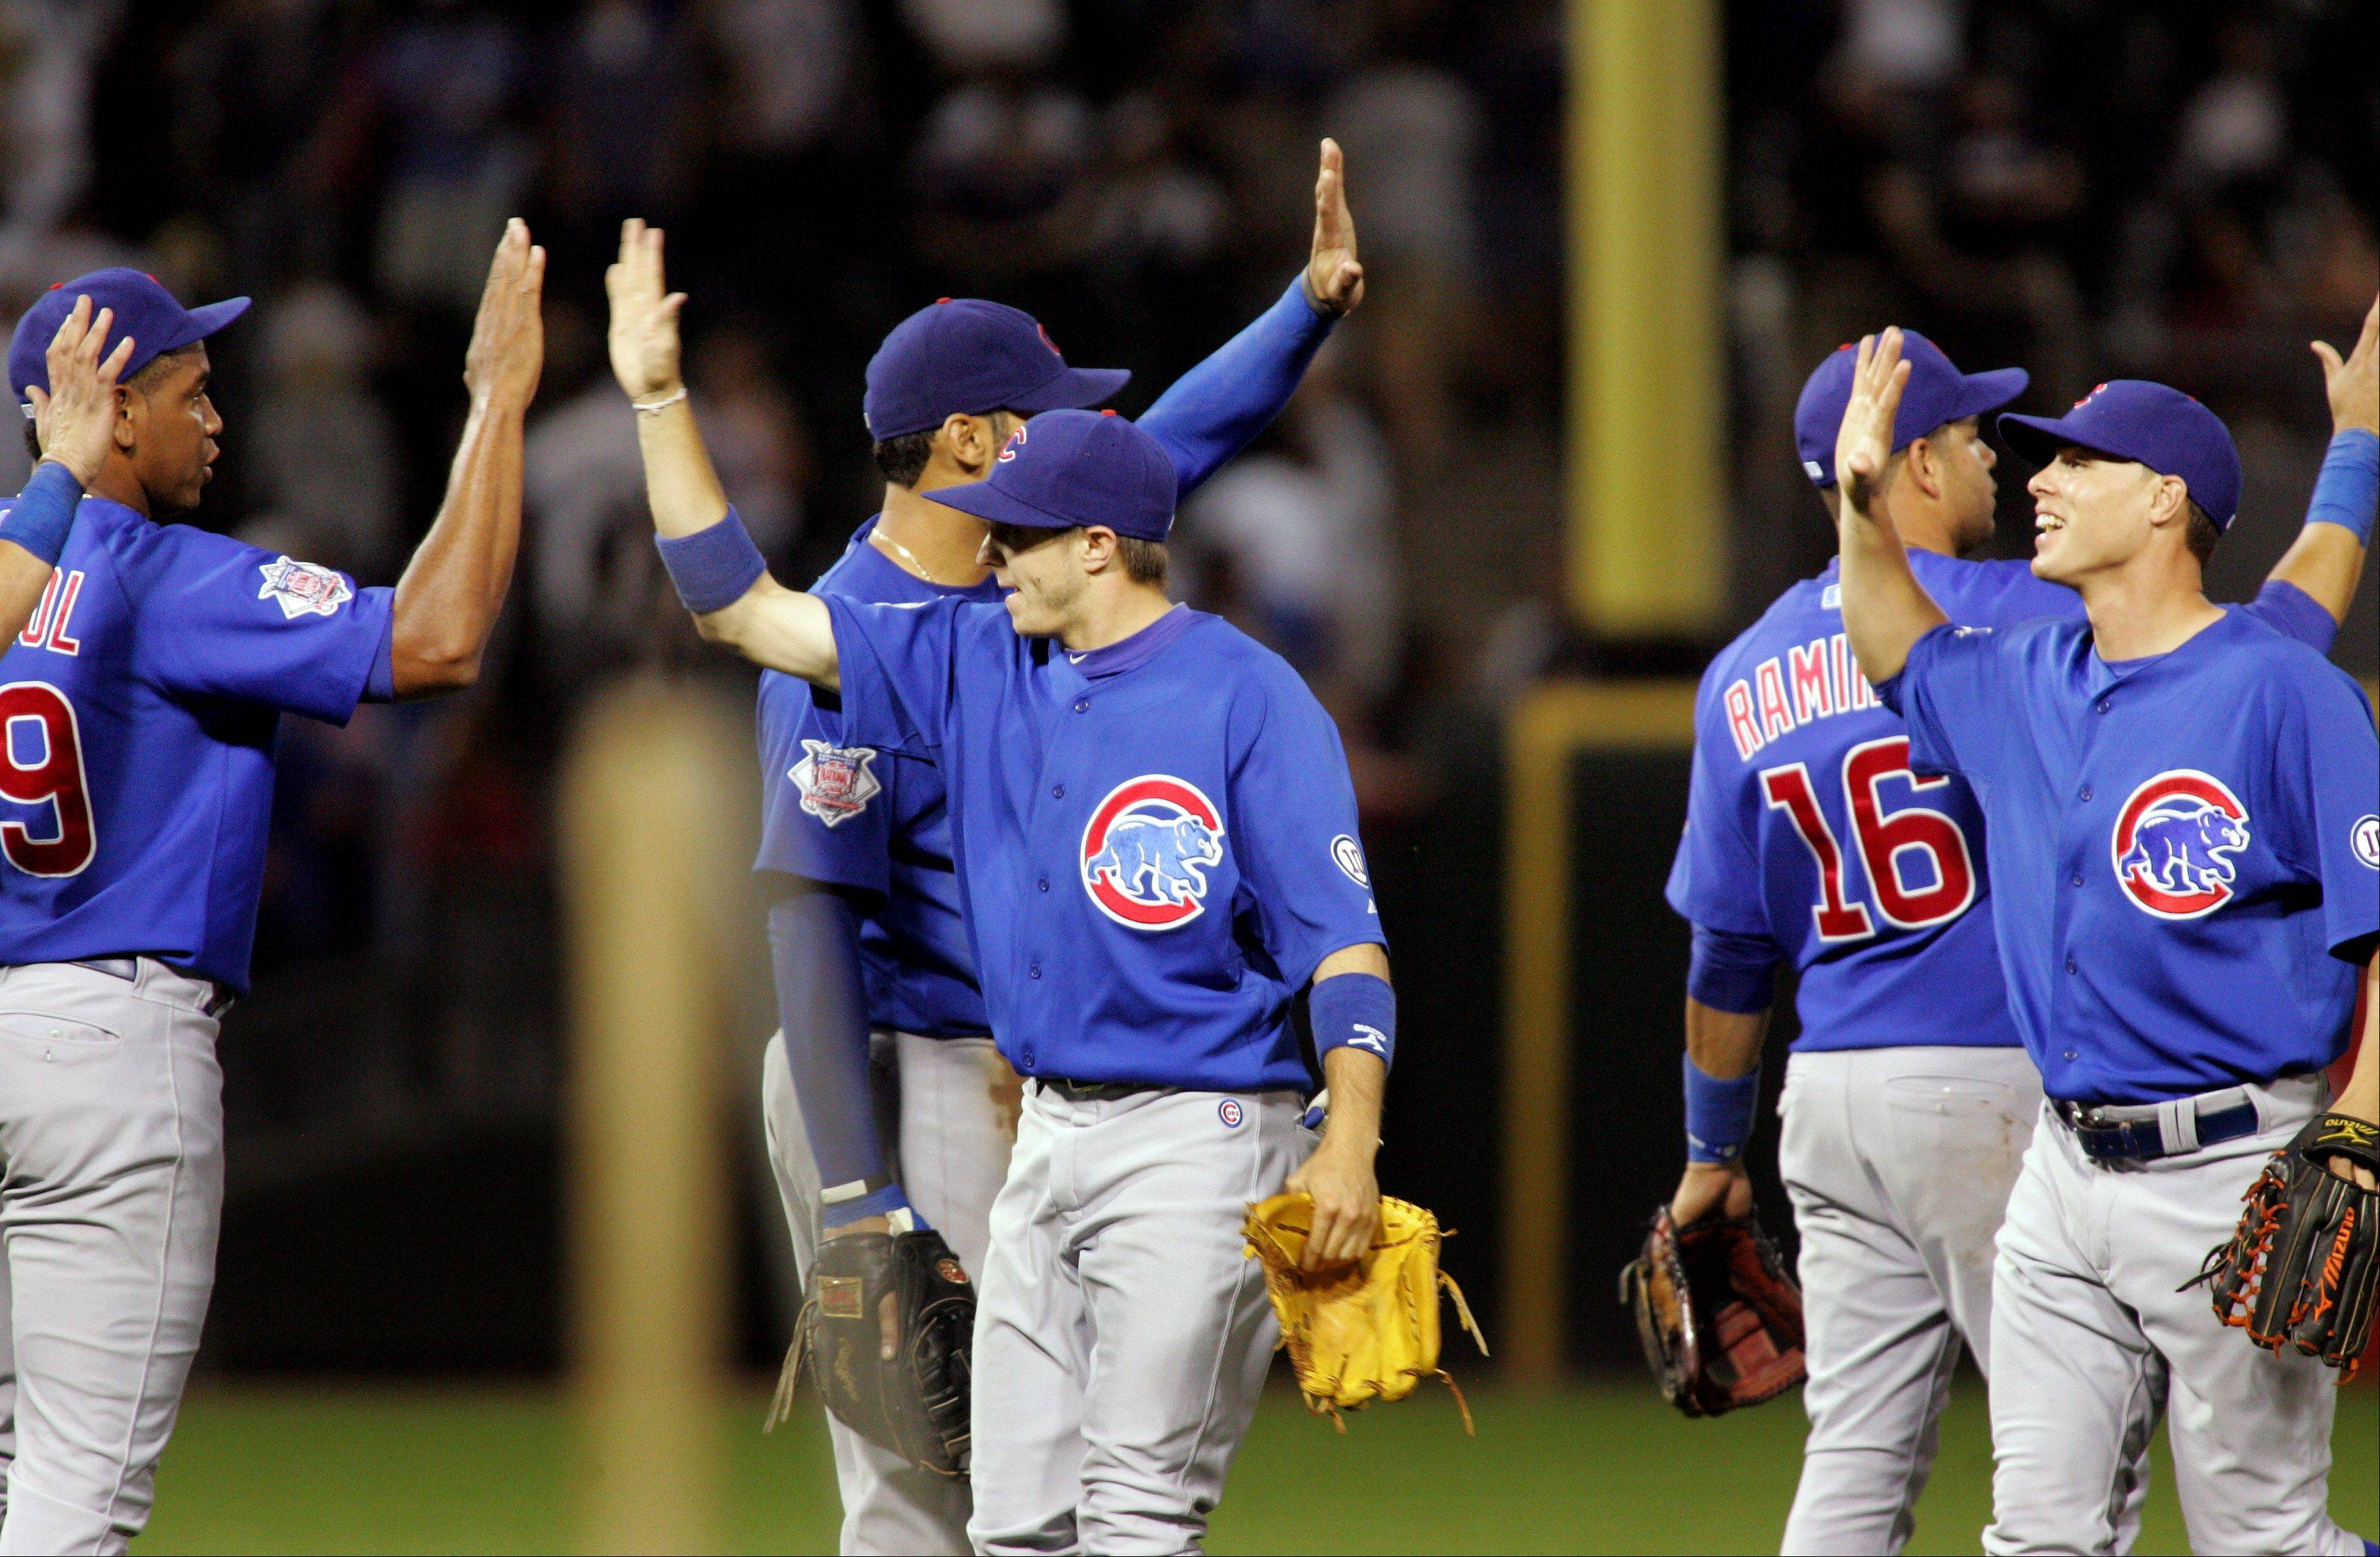 The Chicago Cubs celebrate their win over the Chicago White Sox.